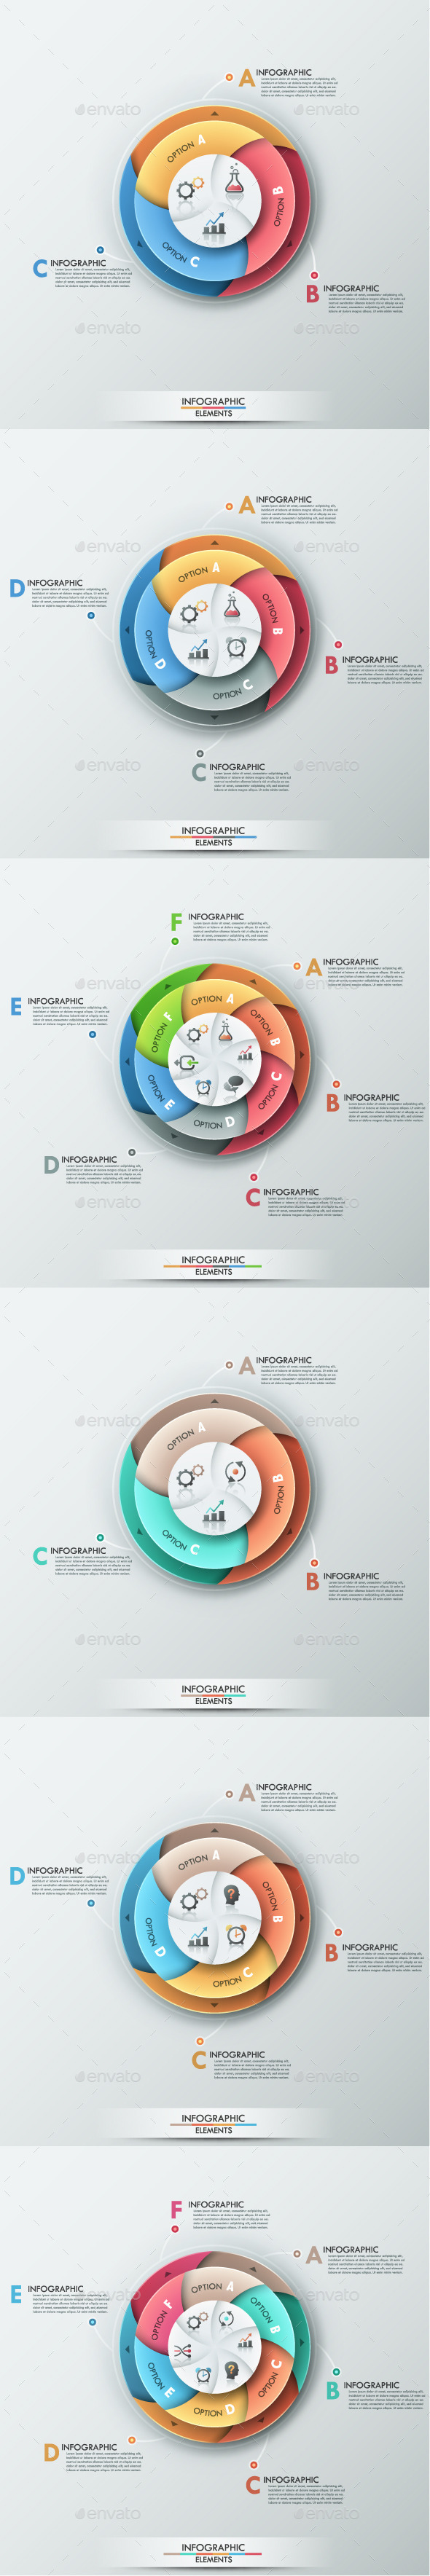 GraphicRiver Modern Infographic Options Banner 6 Items 8876154